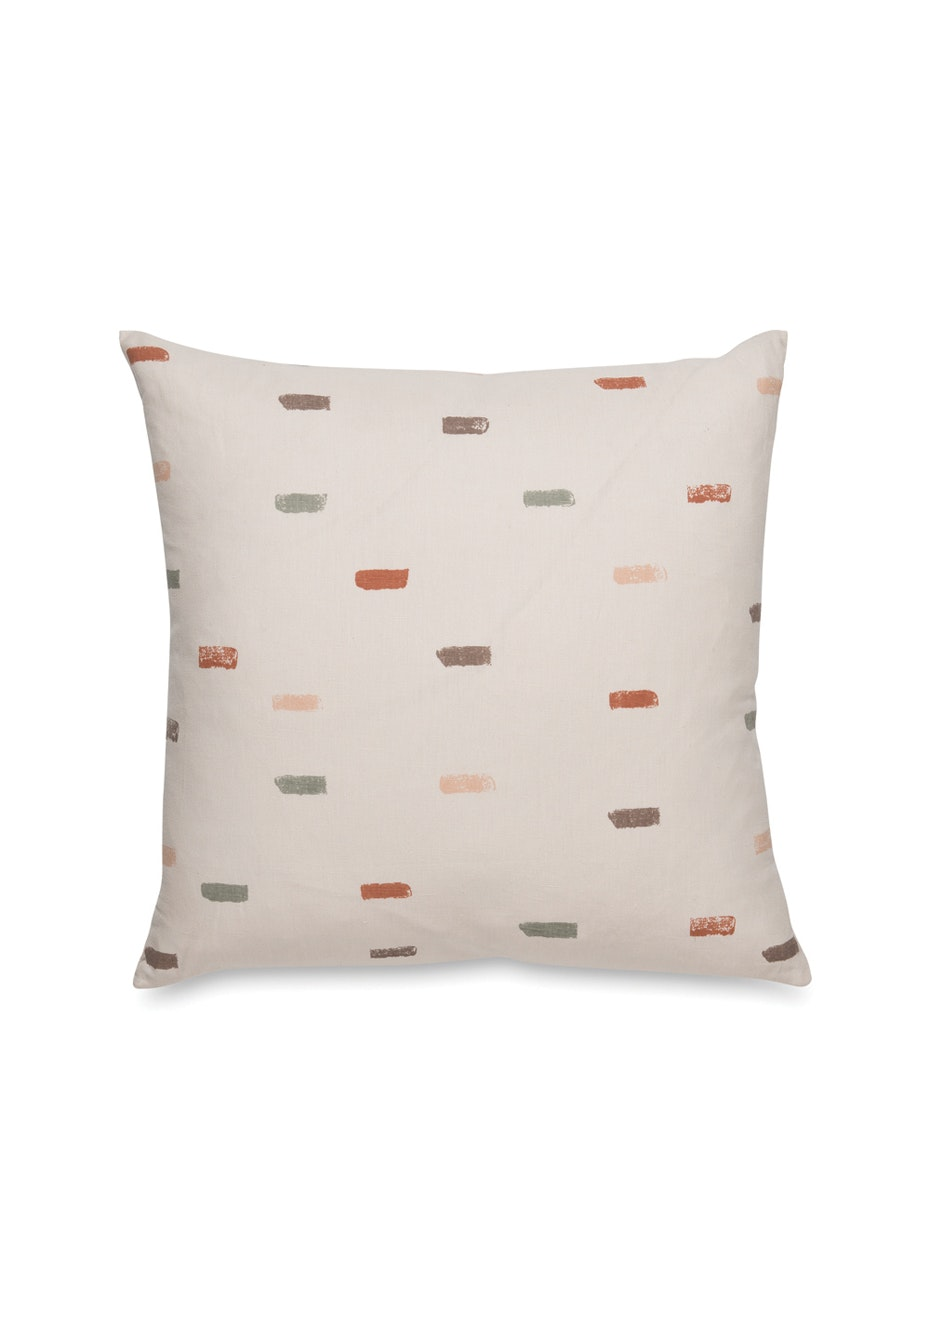 Citta - Ace Cushion Cover - Chalk/Multi